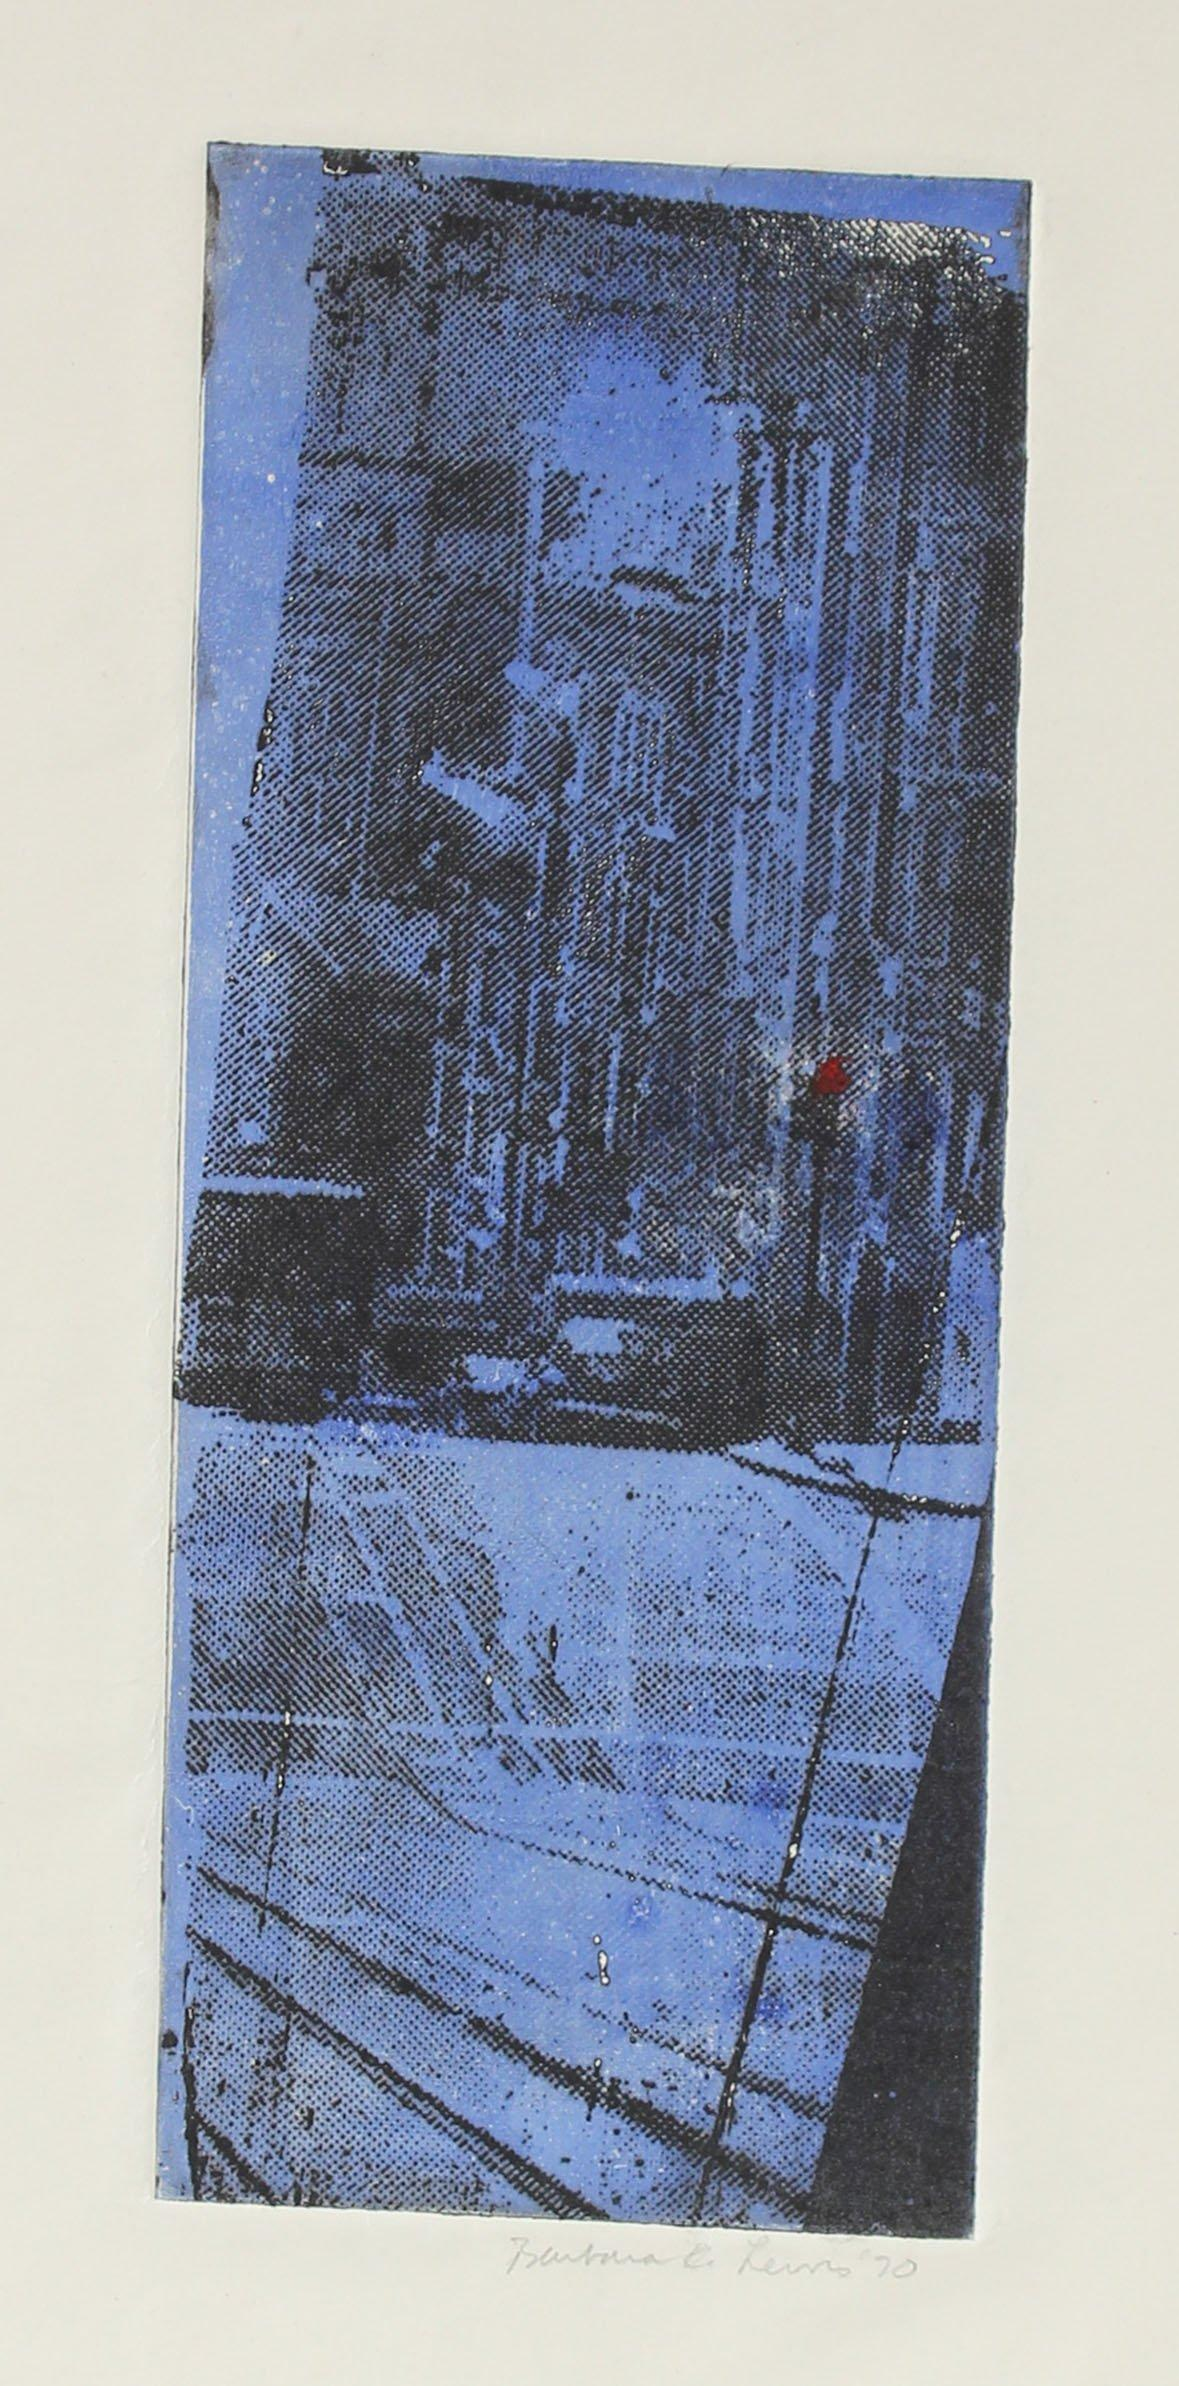 Indigo San Francisco City Detail 1970 Photo-Etching